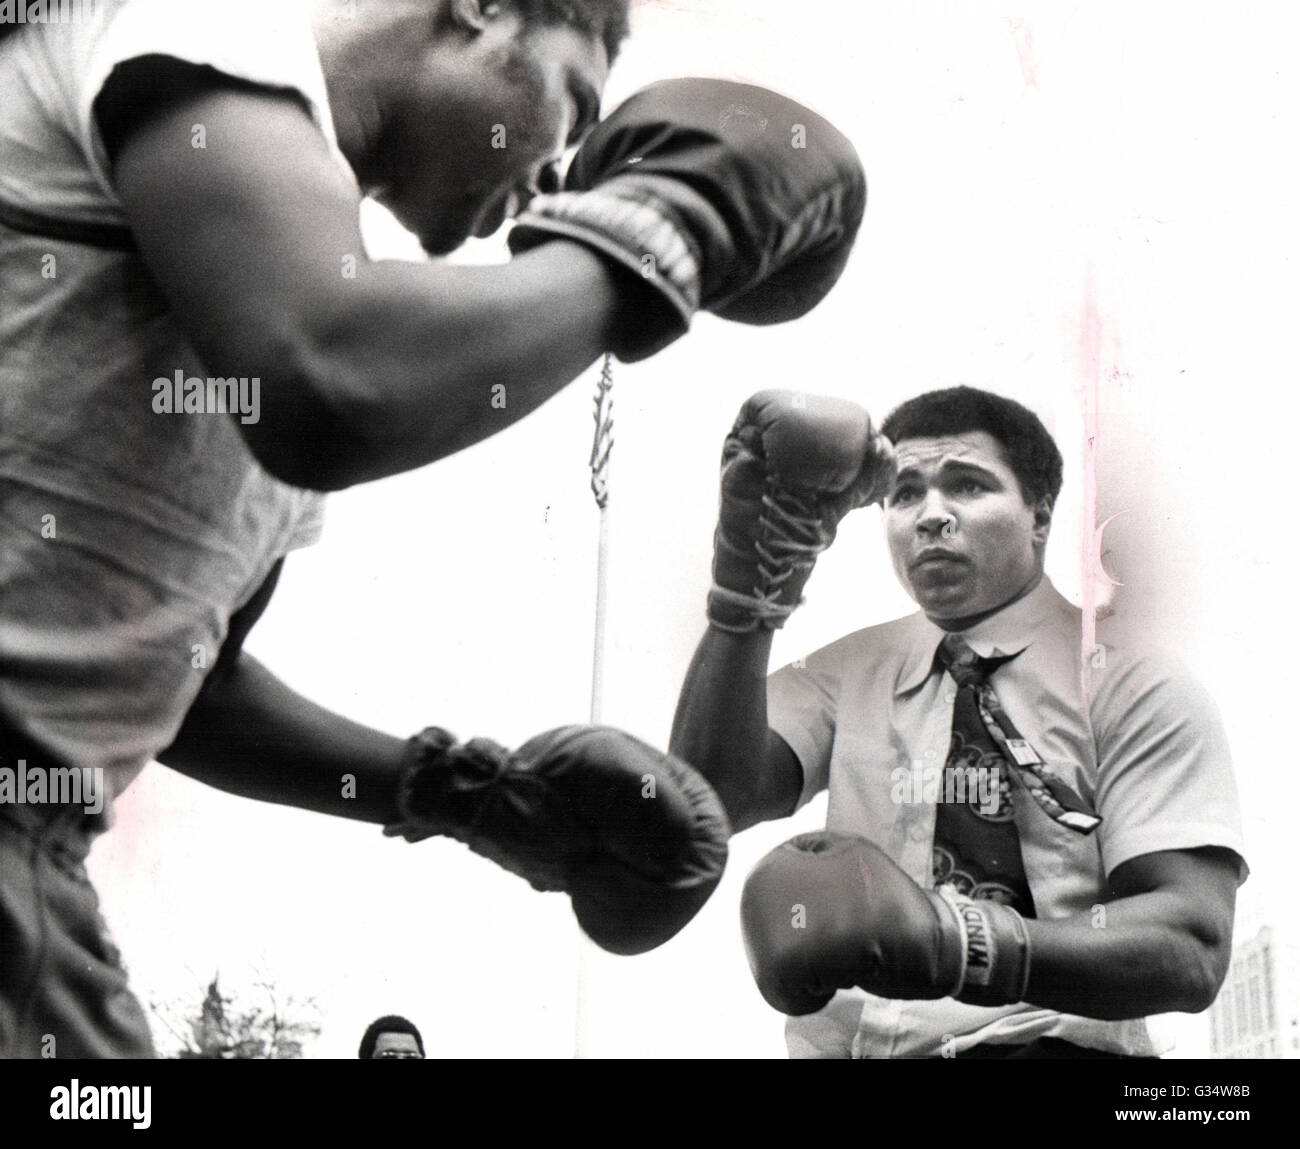 June 3, 2016 - File - MUHAMMAD ALI, the three time heavyweight boxing champion, has died at the age of 74. He had - Stock Image